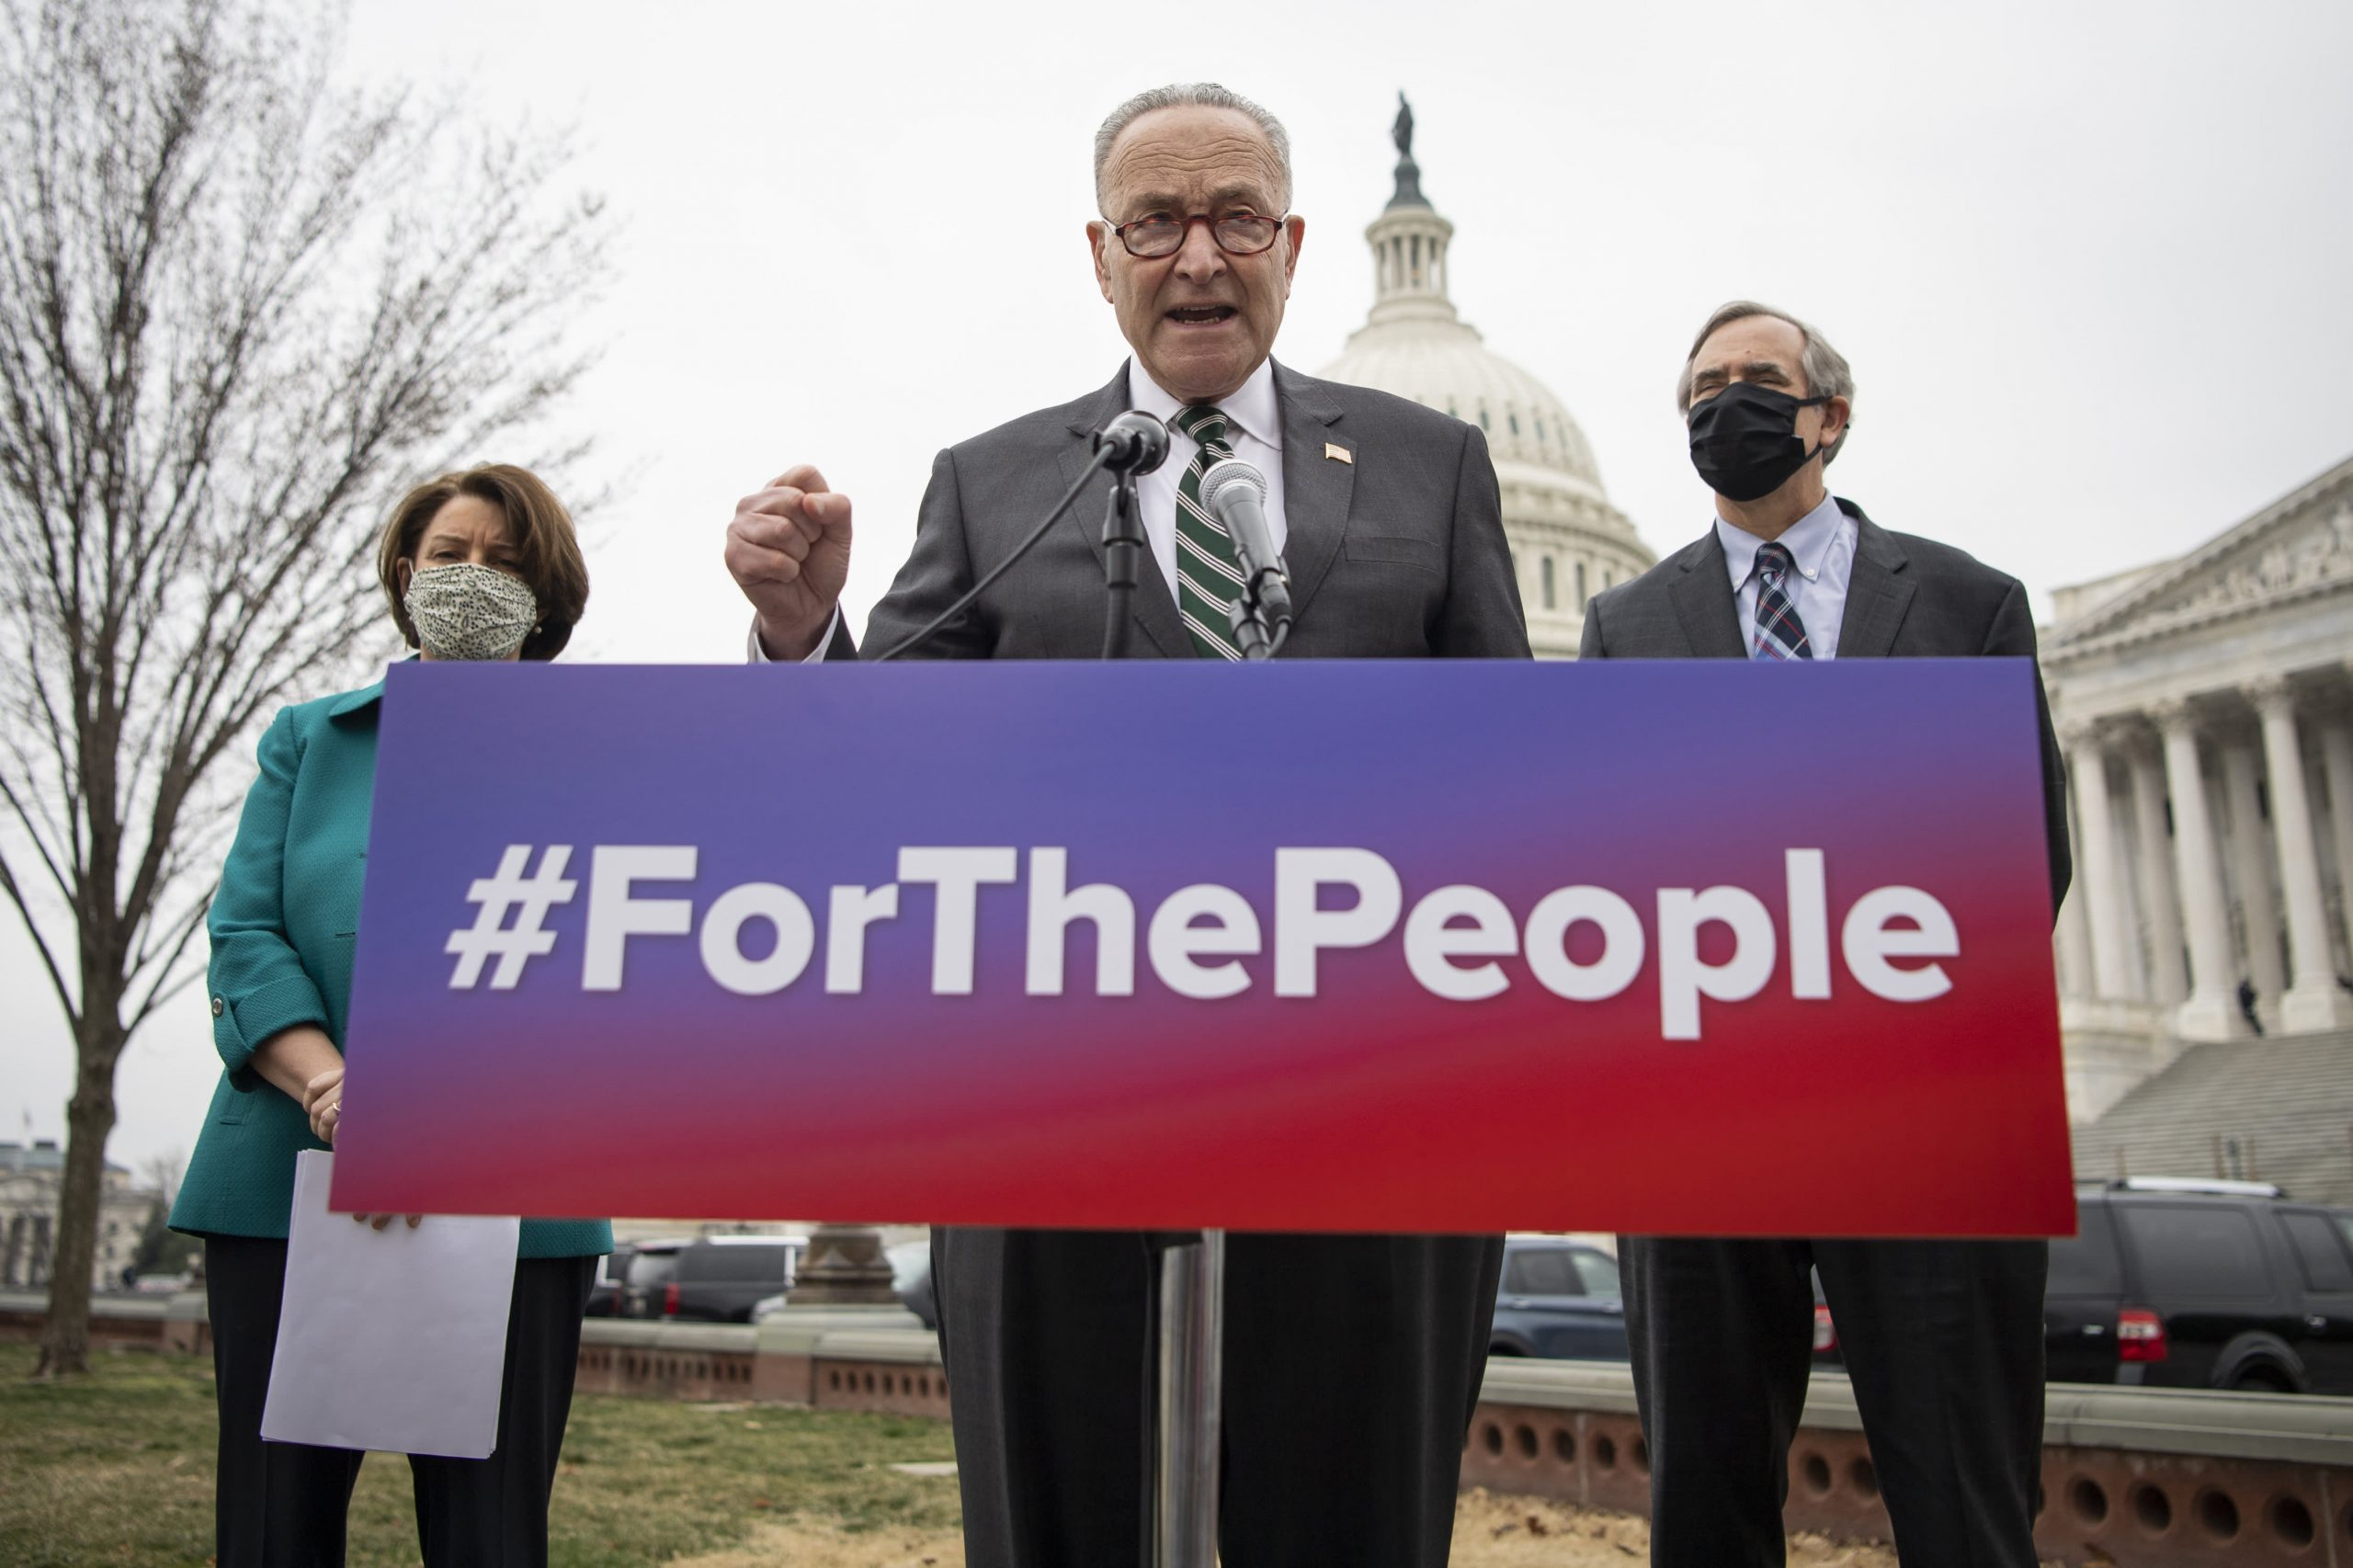 'Everything is on the table' to pass voting rights bill in Senate